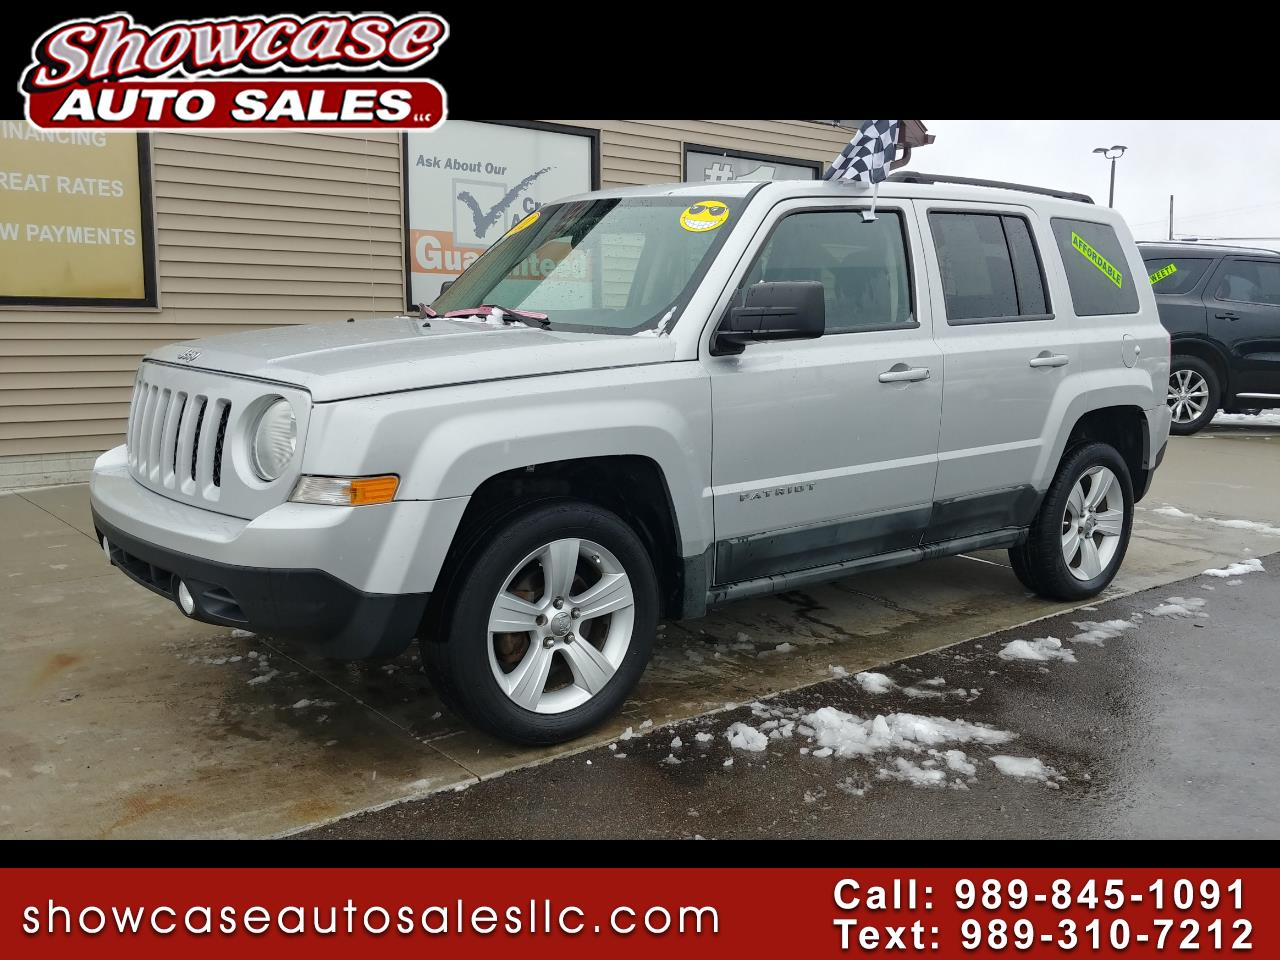 Used Cars For Sale Chesaning Mi 48616 Showcase Auto Sales 2011 Jeep Patriot Fuel Filter 4wd 4dr Latitude